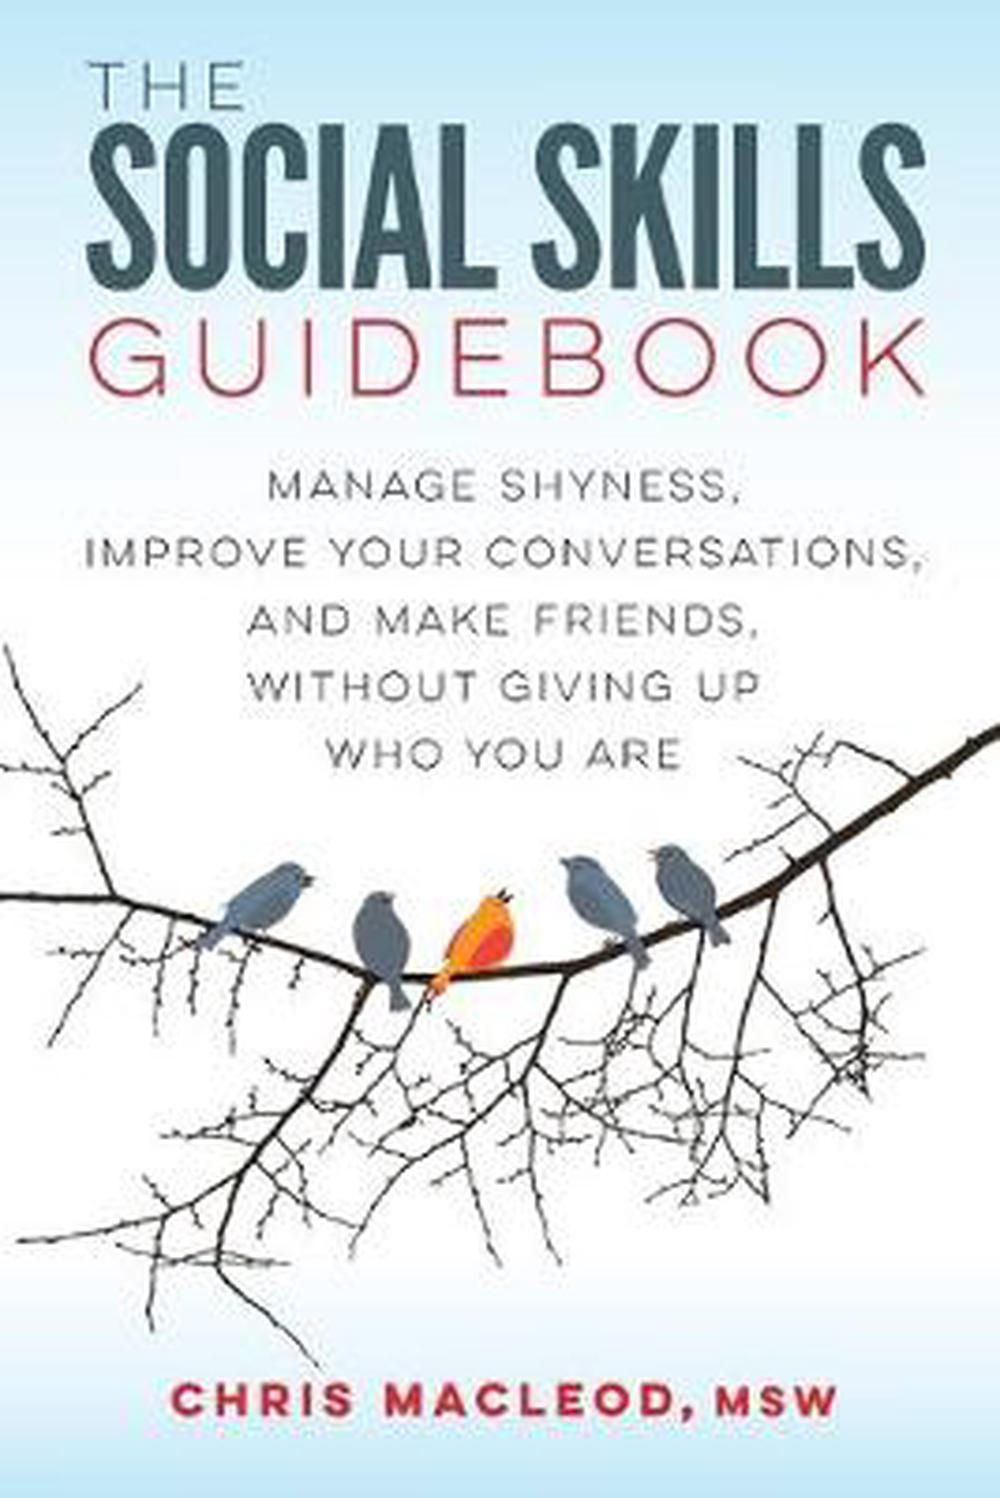 The Social Skills Guidebook